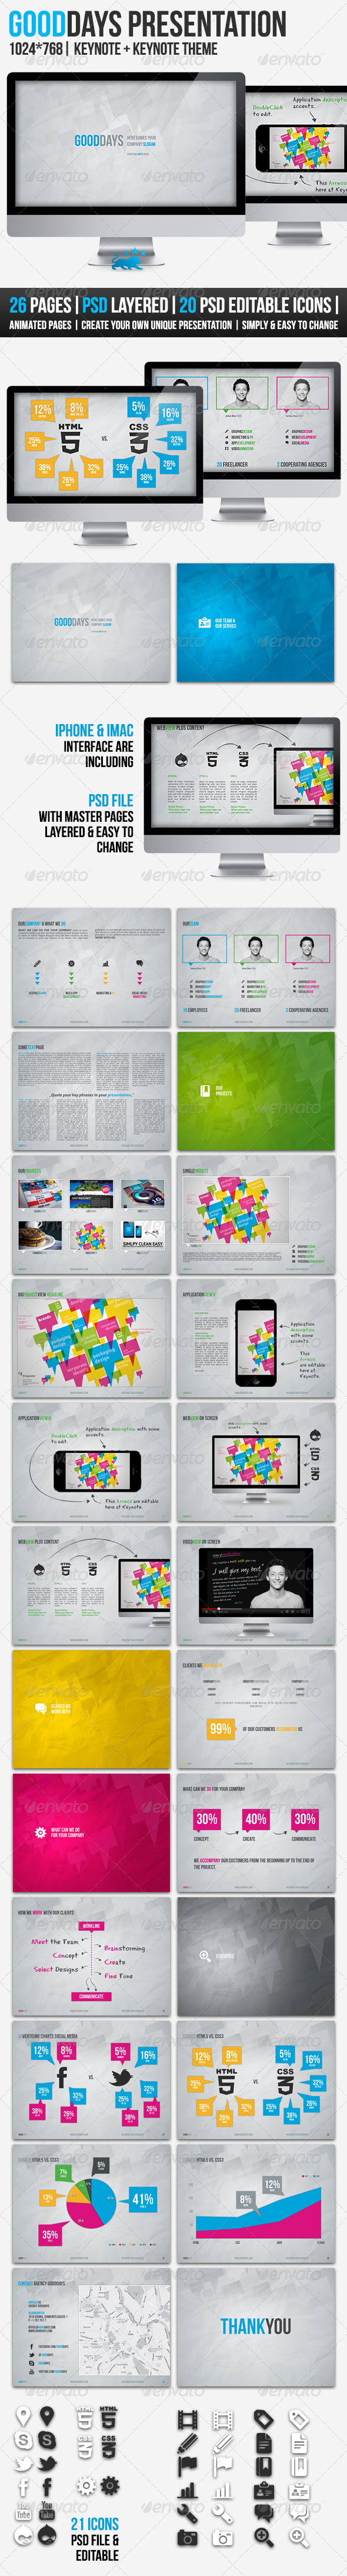 GraphicRiver GOODDAYS 26 Pages Keynote Presentation 3515462